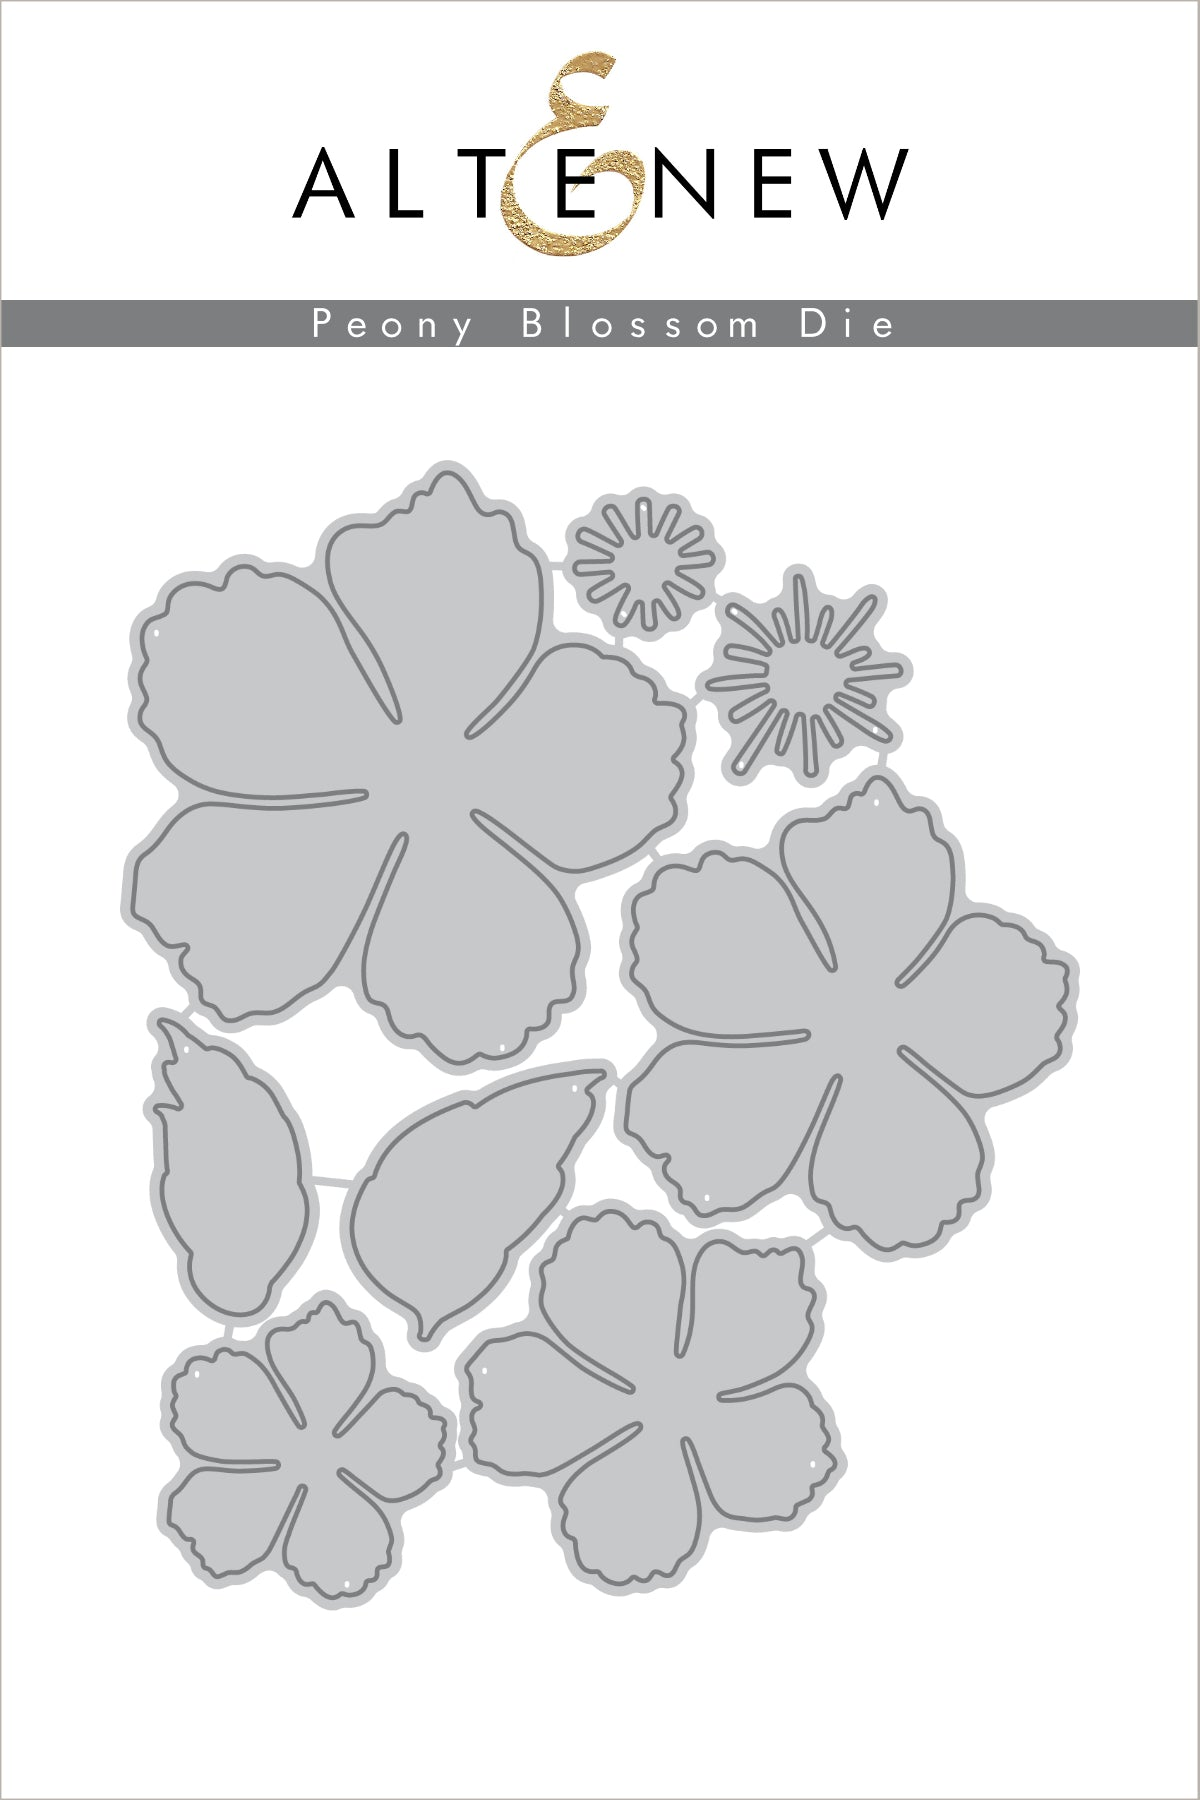 Altenew Build-A-Flower Peony Blossom | Serendipity Craft Boutique